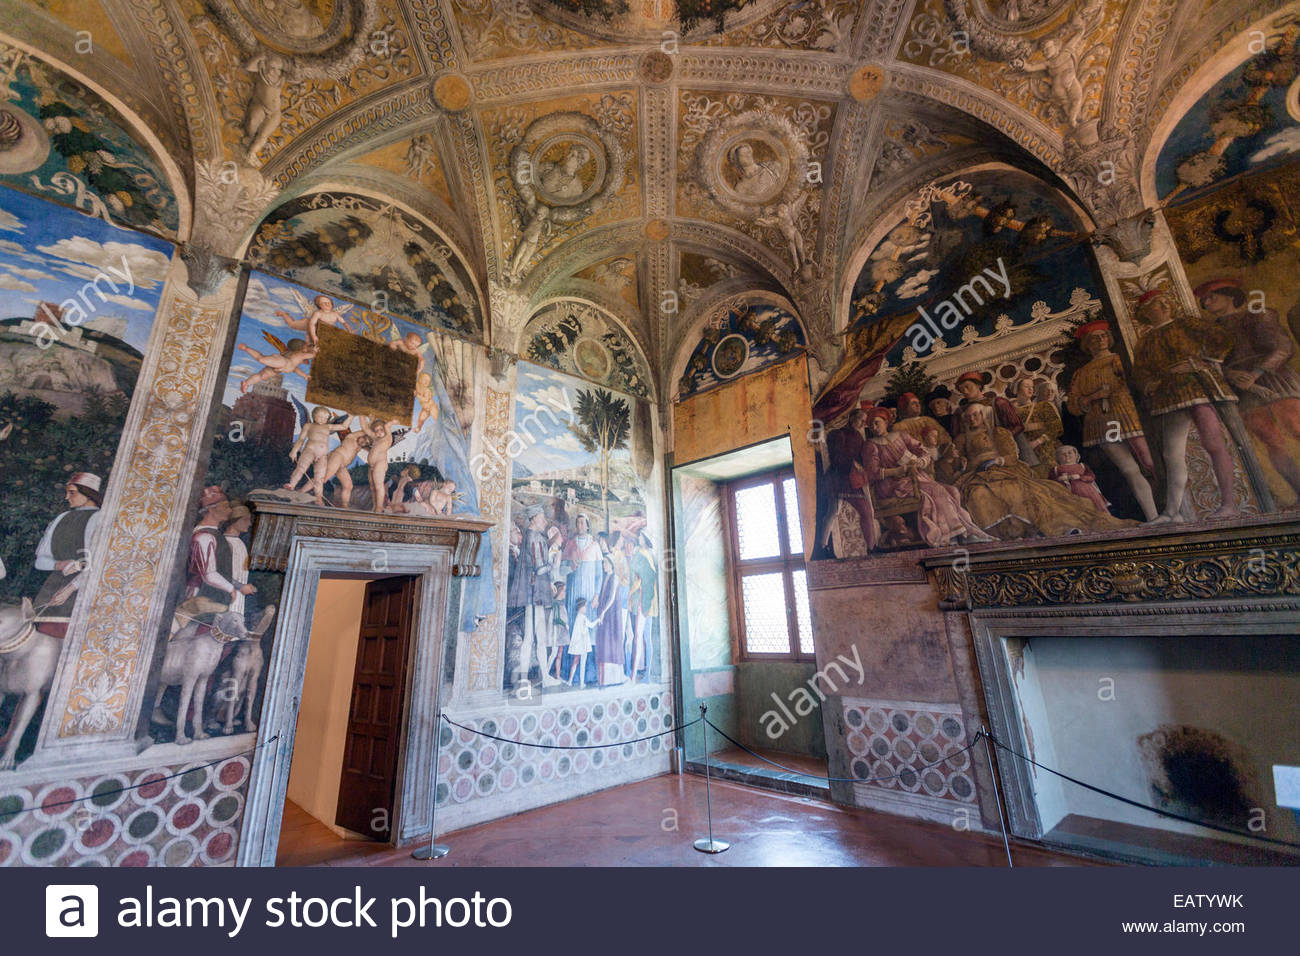 Camera degli Sposi, Ducal palace, with  frescoes executed by Andrea Mantegna. Stock Photo